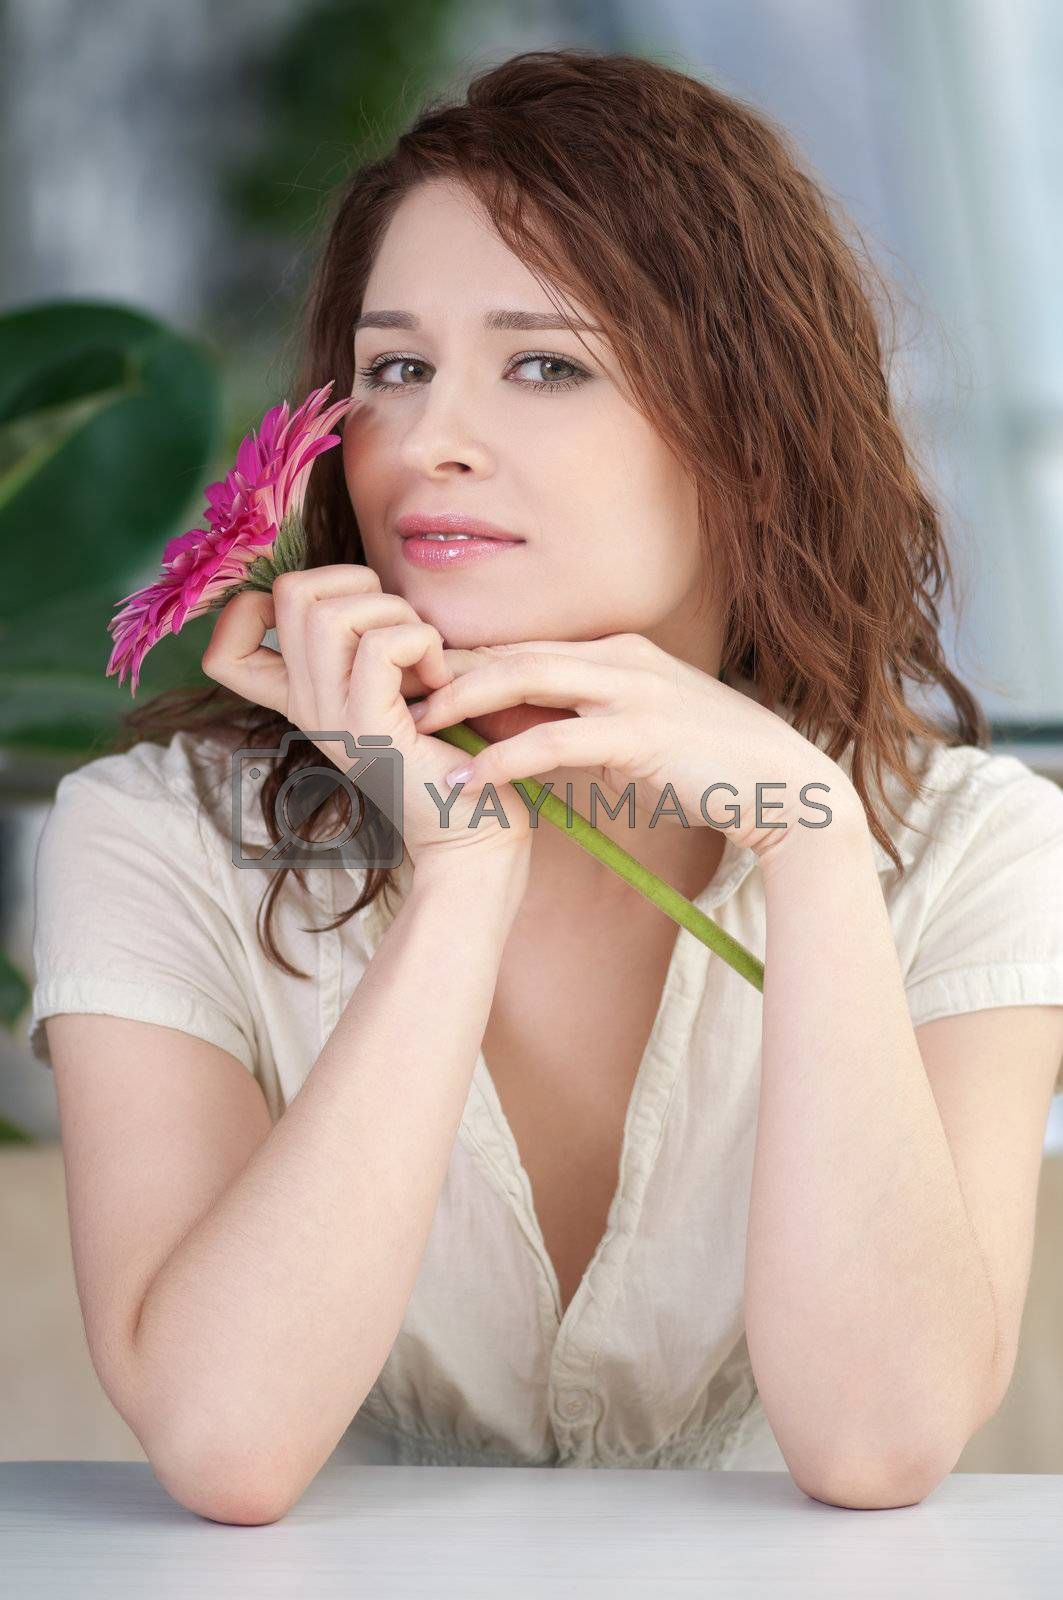 Happy smiling woman at cafe with flower. Dating